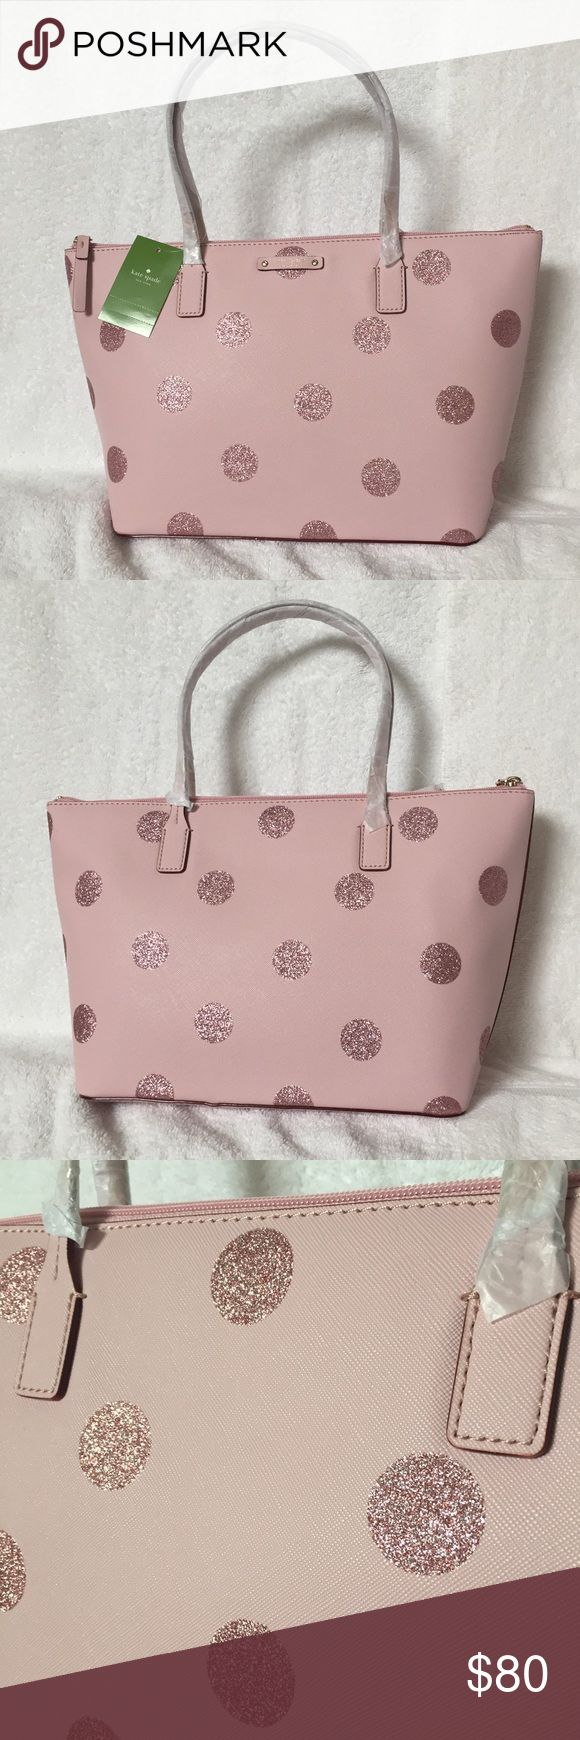 """NWTs! Kate Spade Pink Glitter Dot Purse NWTs! Kate Spade Pink Glitter Dot Purse. Style is Haven Lane Hani. This is the medium sized bag: 15x9x5 with a 6"""" drop on handles. Saffiano textured exterior with pink lining. Has a zipper interior pocket as well as 2 open pockets. Outer zipper is pink wot gold hardware. Originally $120. 1216/38/21417 kate spade Bags Shoulder Bags"""